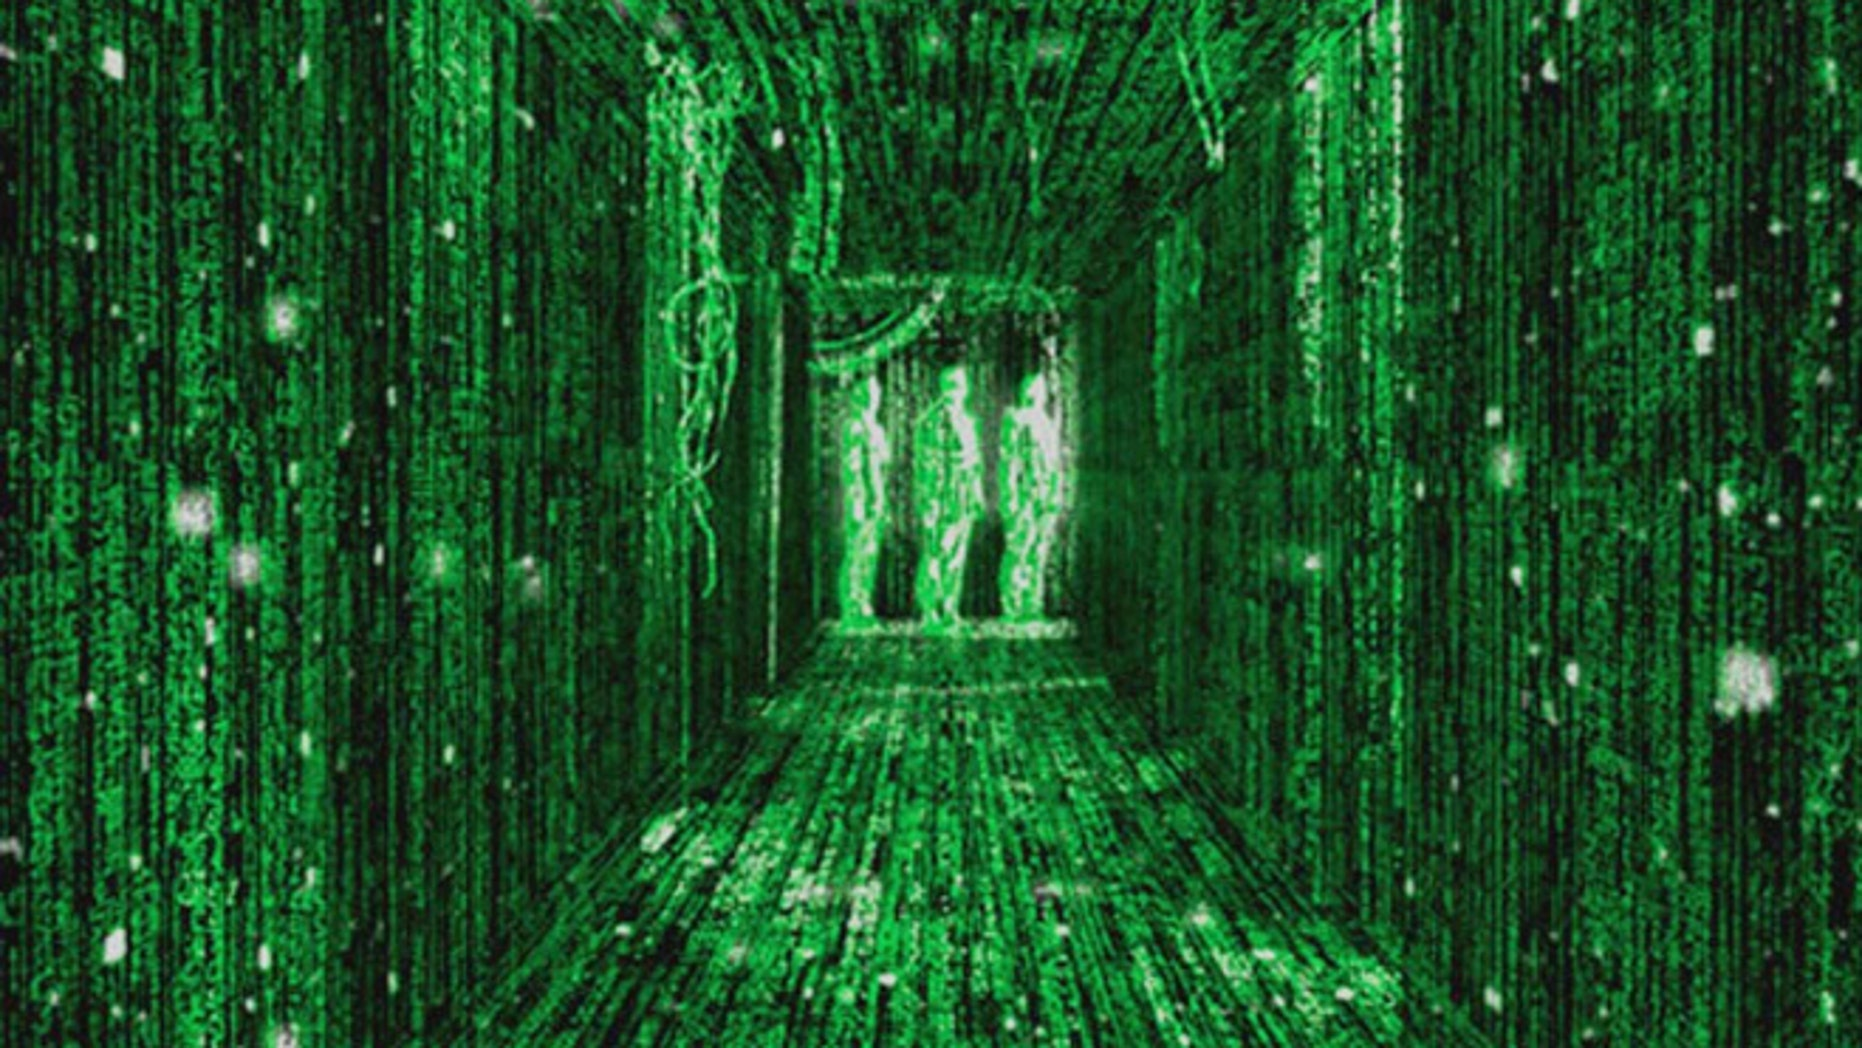 A scene from The Matrix.